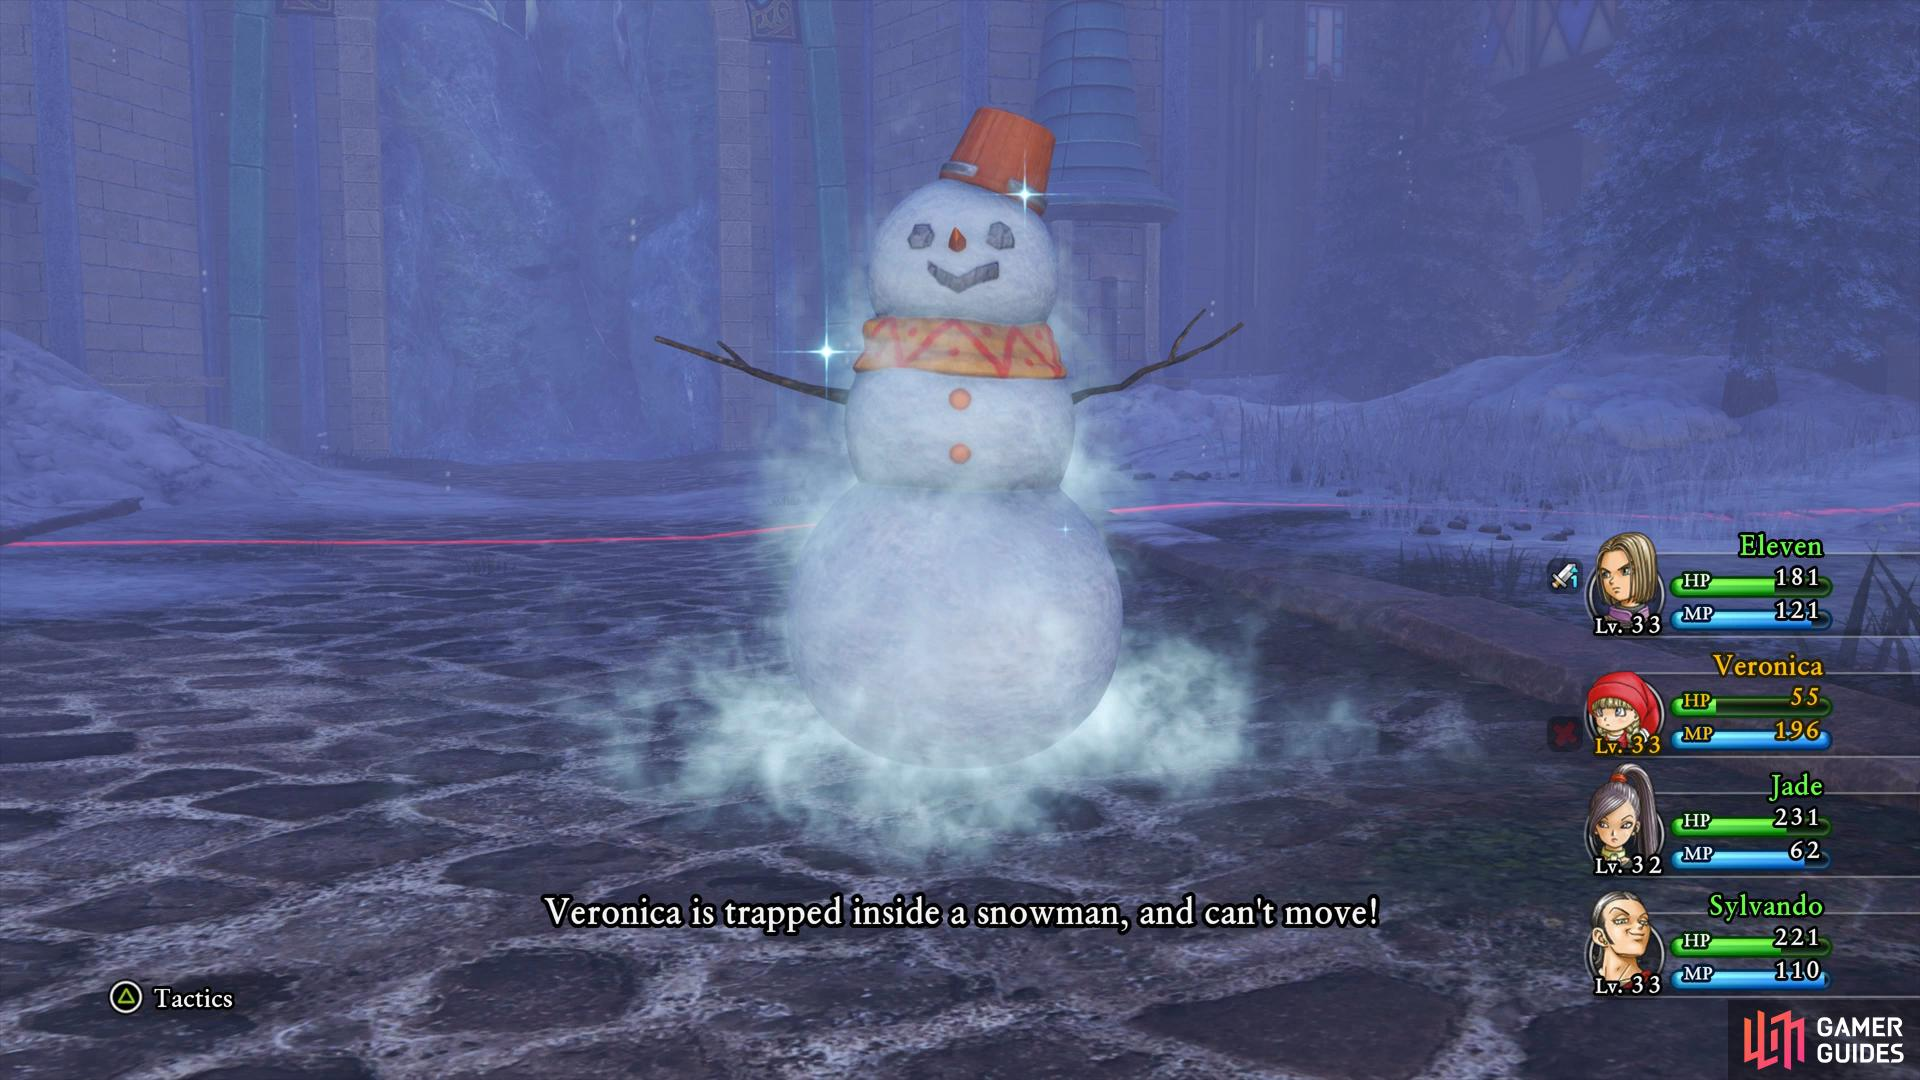 You cannot cure the Snowman effect, you'll have to ride it out